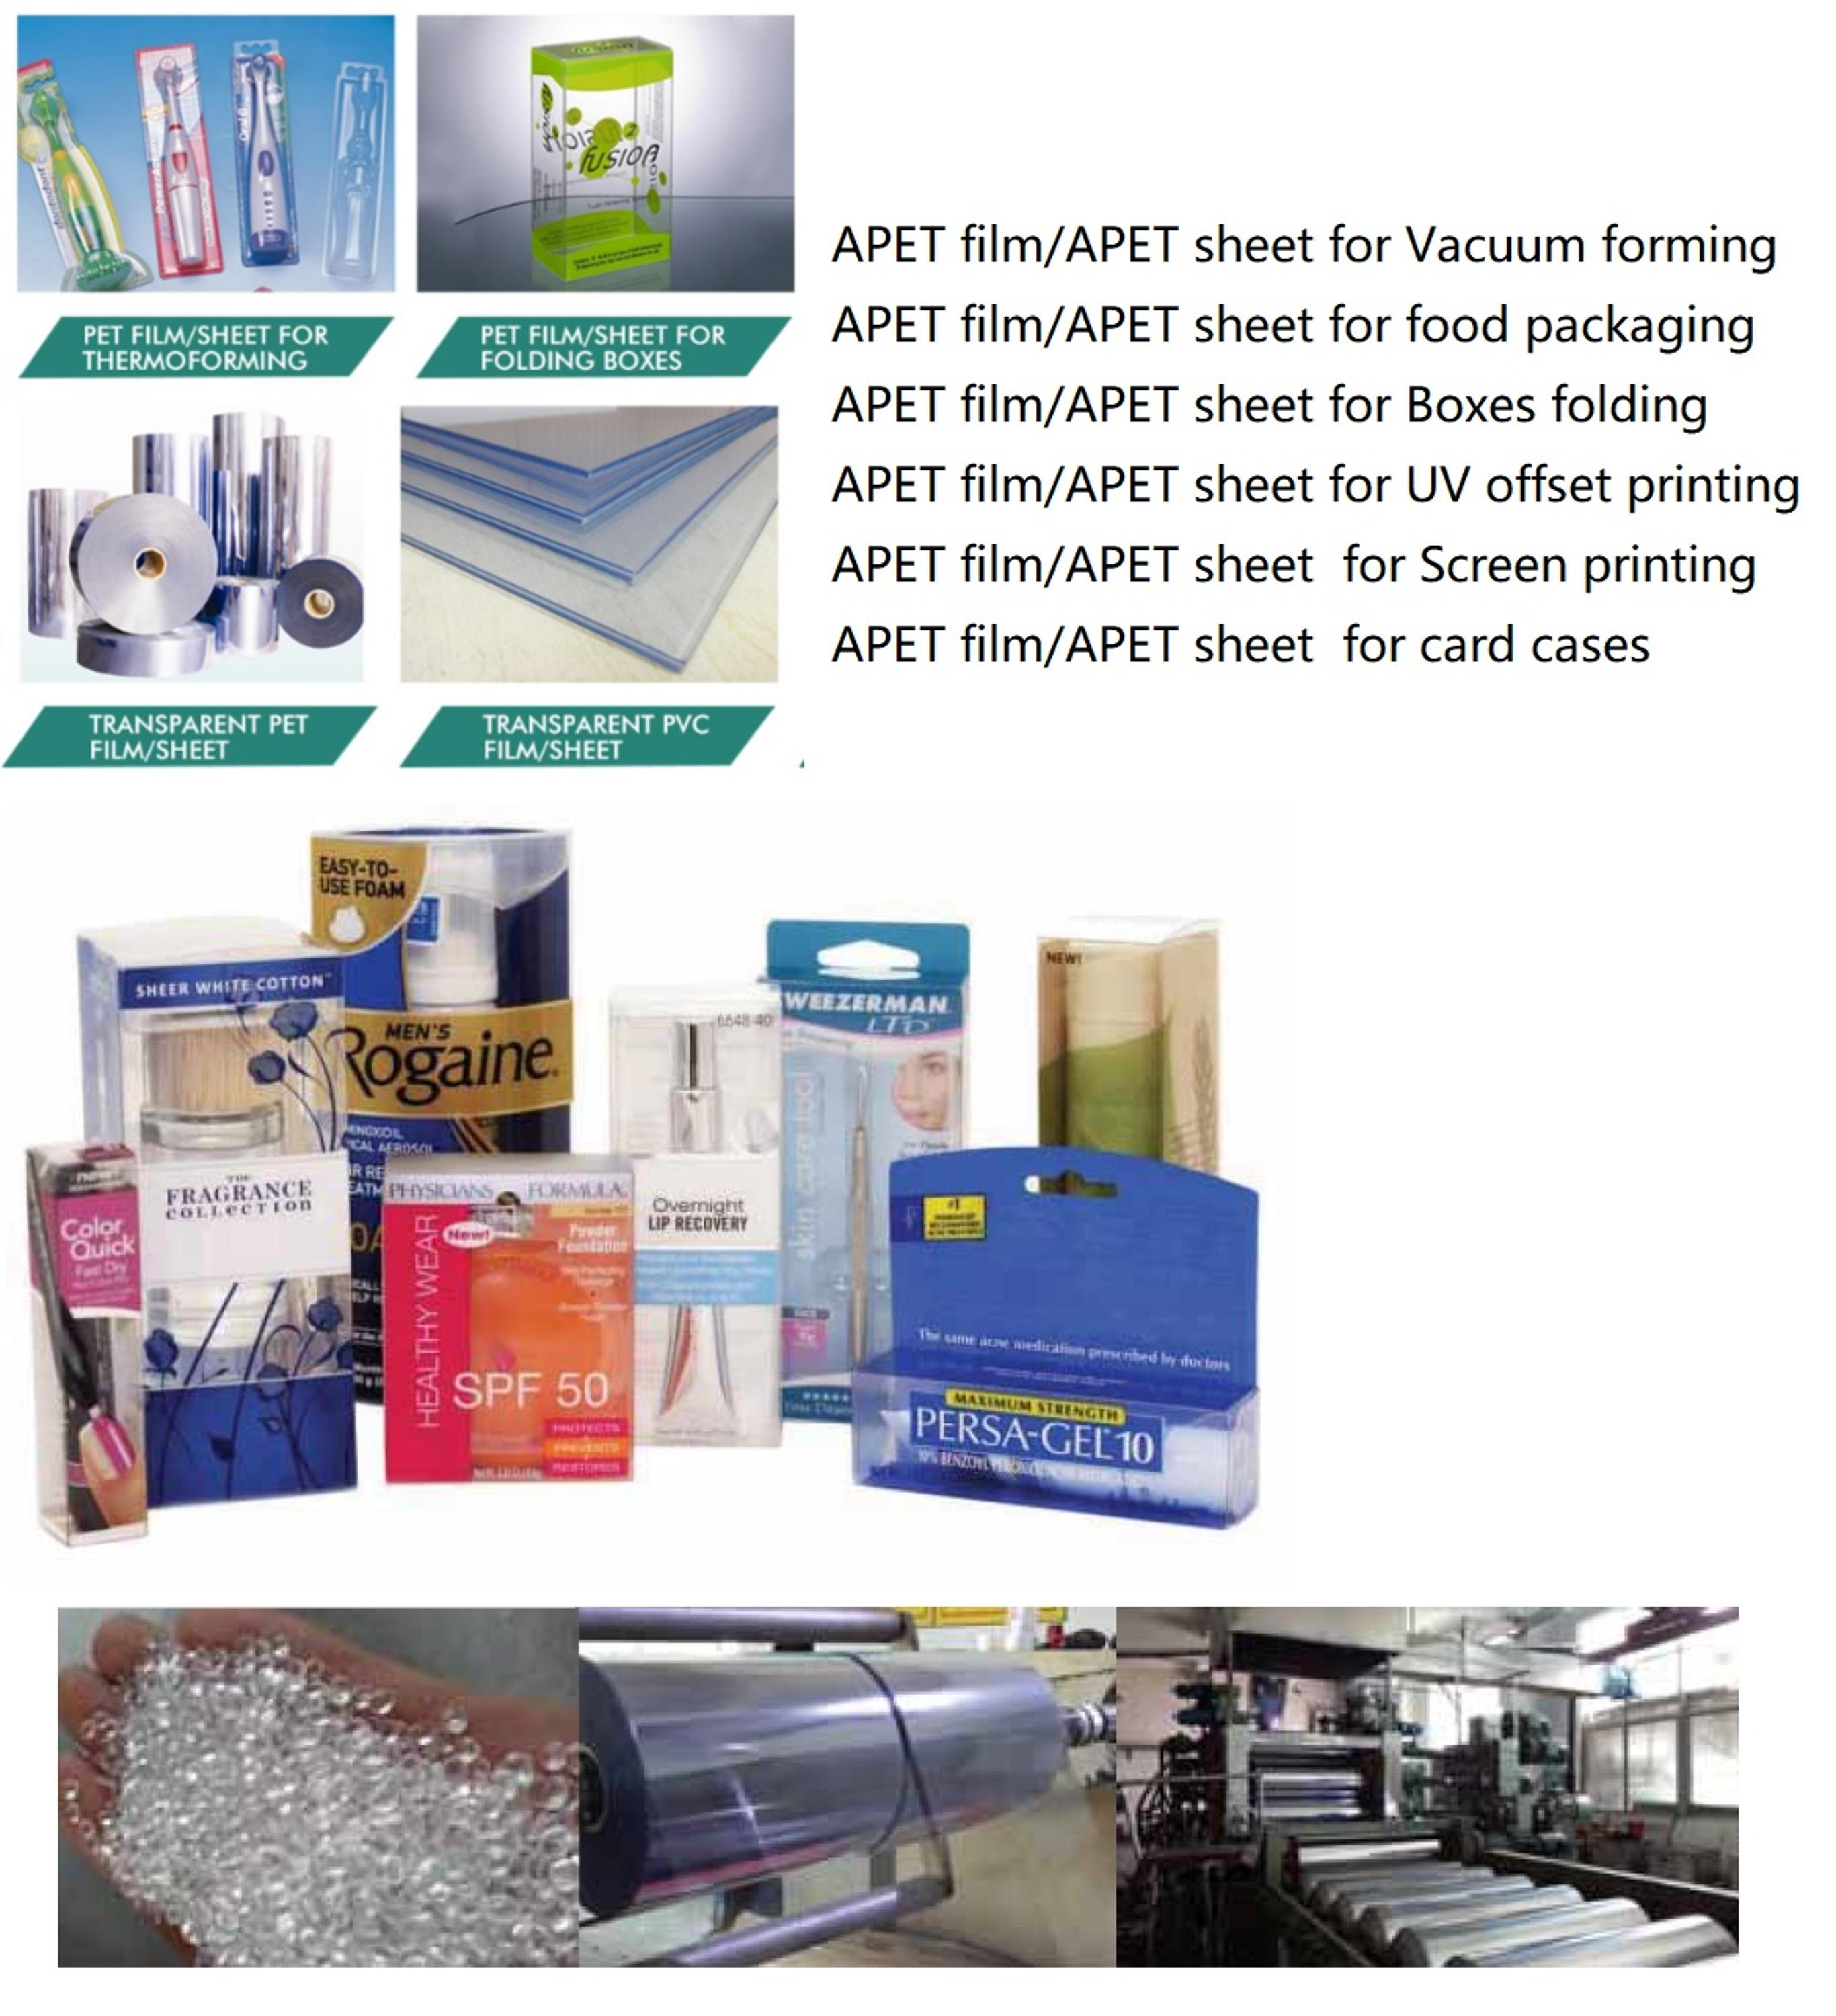 350mic,400mic,300micron Transparent APET Sheet,APET Film for Screen Printing